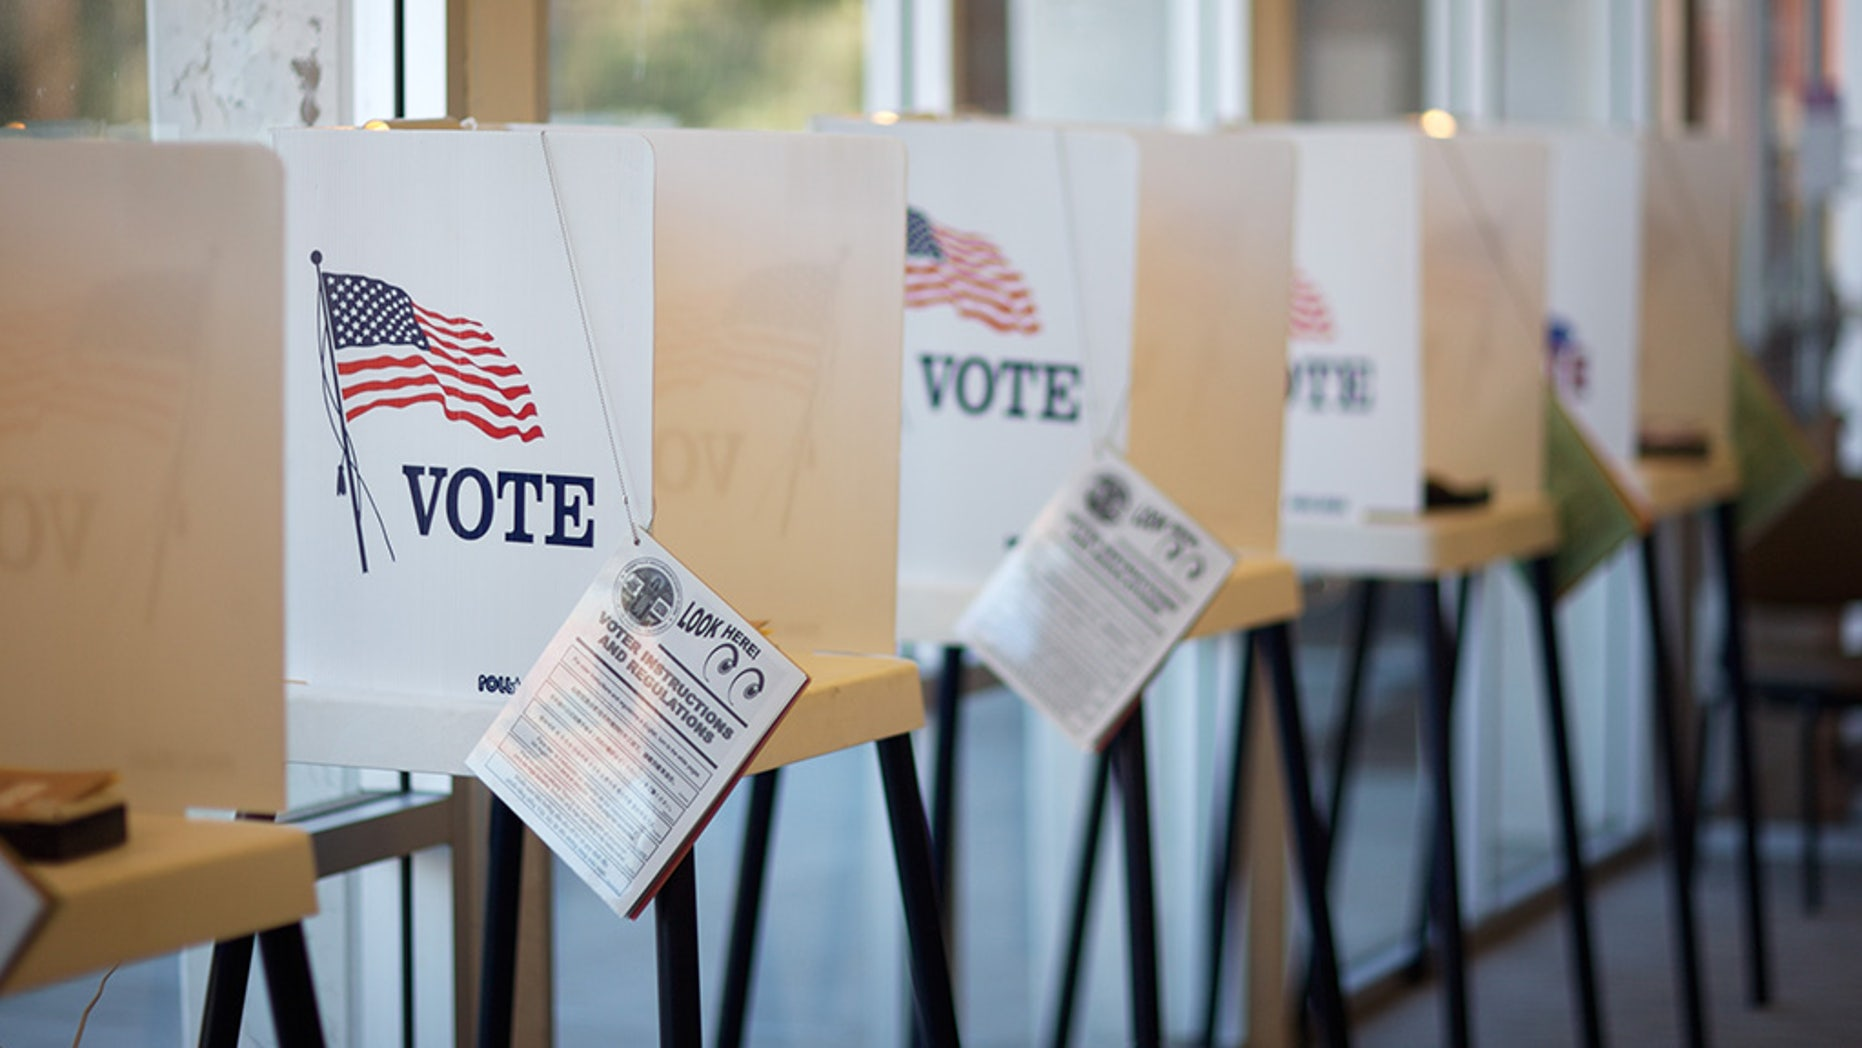 """Millennials may sit out the U.S. midterm elections as a new survey found that only 28 percent of young adults ages 18-29 said they are """"absolutely certain"""" of voting in November."""